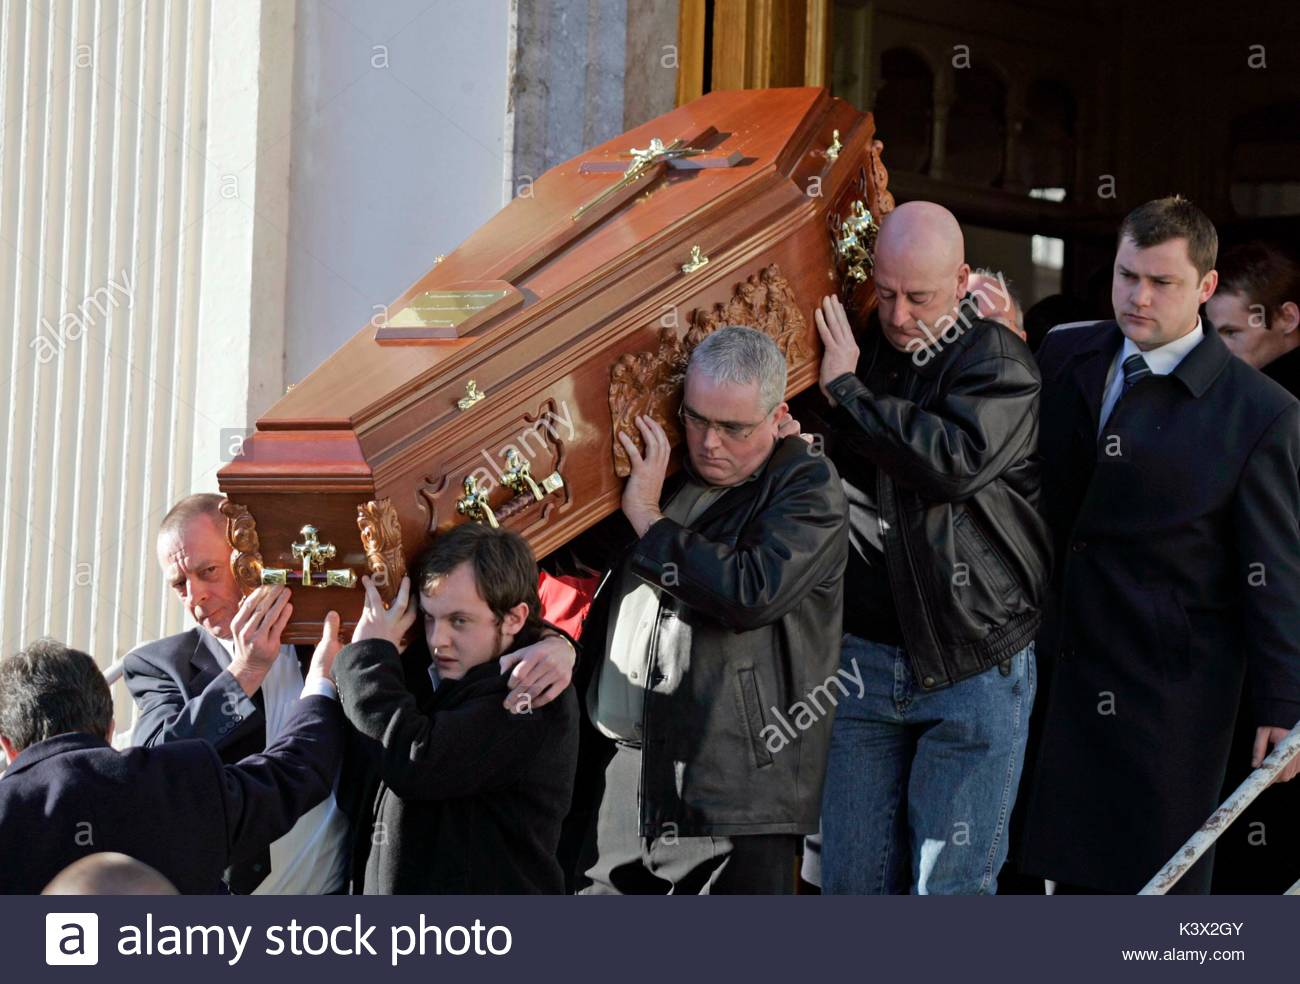 Geraldine O'Keefe's Coffin at the funeral of Geraldine O'Keefe, mother of actor Jonathon Rhys Myers - Stock Image